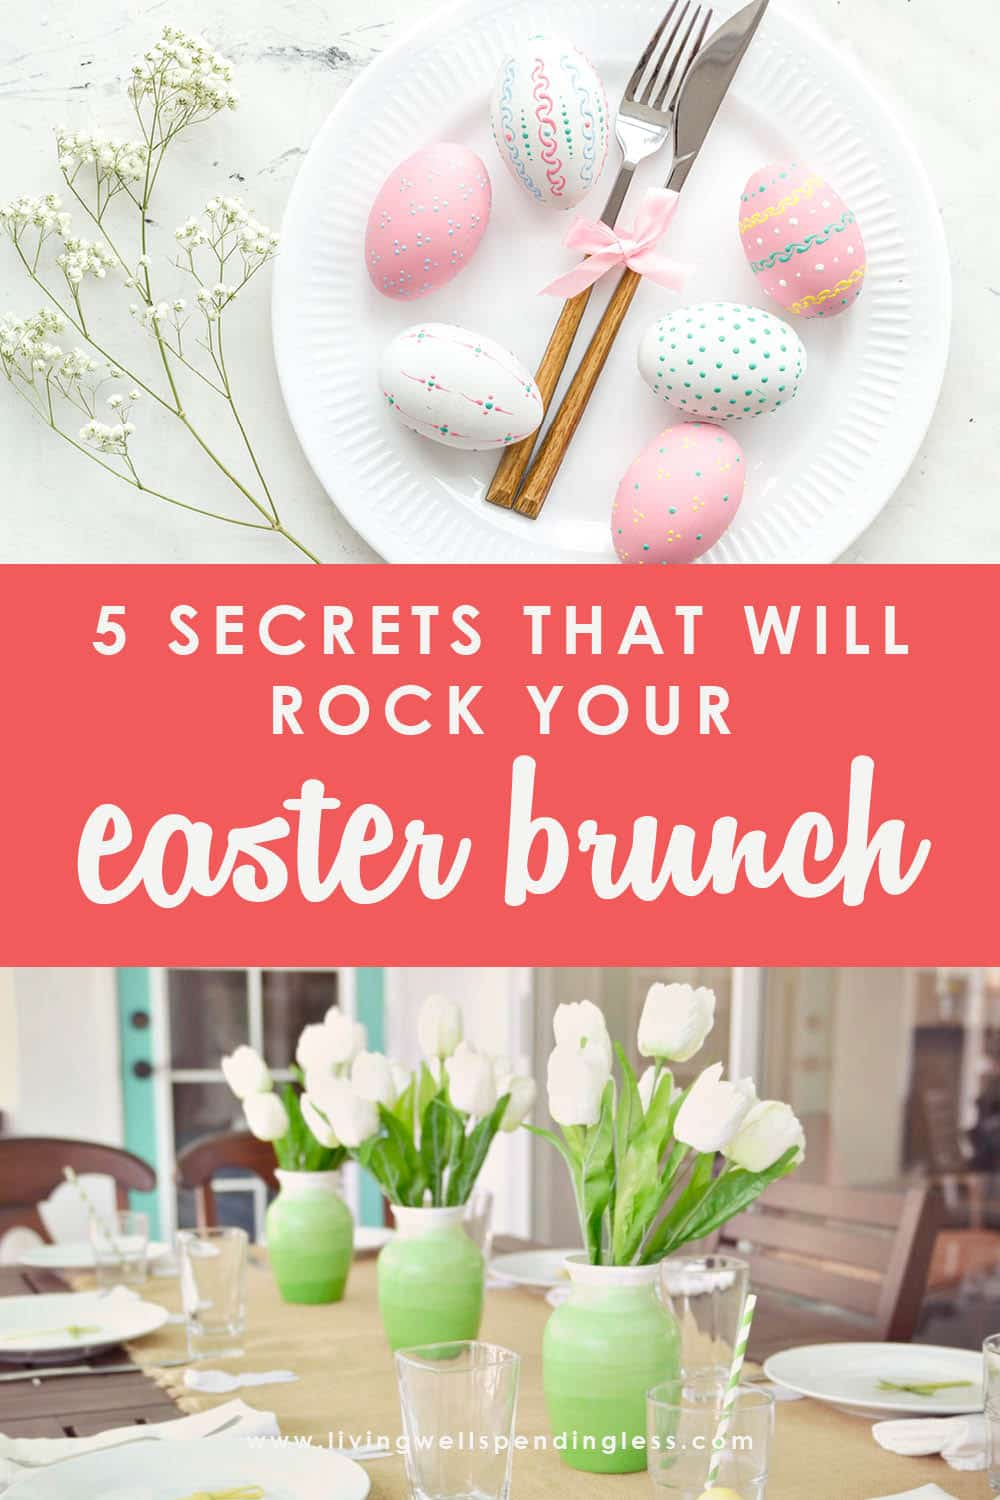 Searching for inspiration for your next brunch? Here are a host of great ideas to help plan out an Easter Brunch or Birthday this year! #easterbrunch #brunch #birthdaymenu #easter #easterbirthday